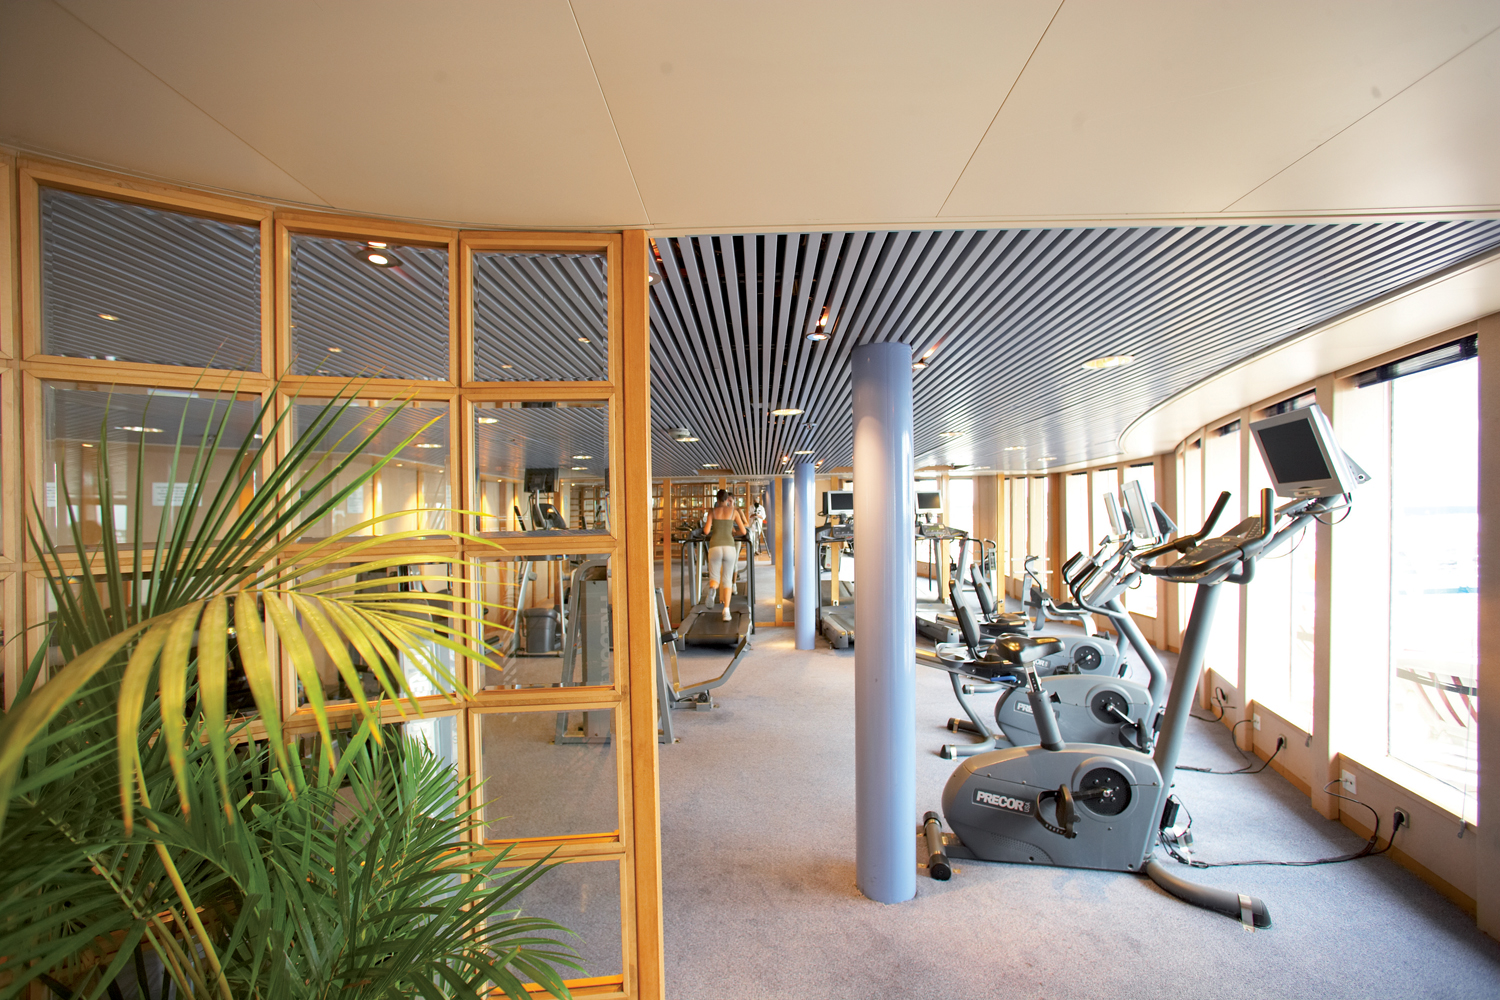 Cruise & Maritime Voyages Marco Polo Interior Wellness Gym.jpg